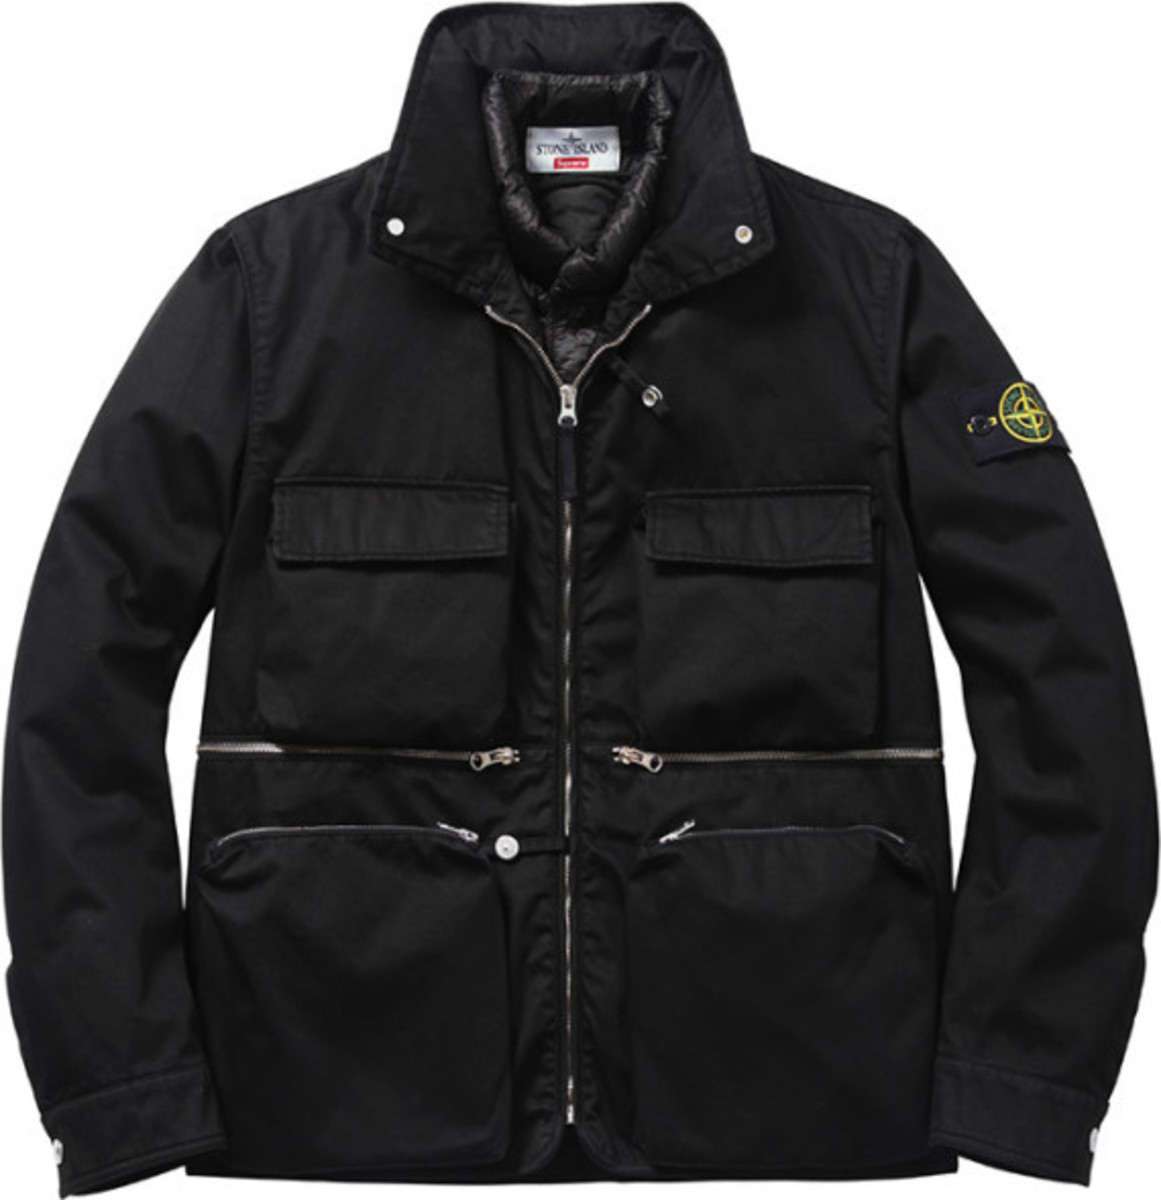 Supreme x Stone Island – Fall/Winter 2014 Collection | Available Now - 22